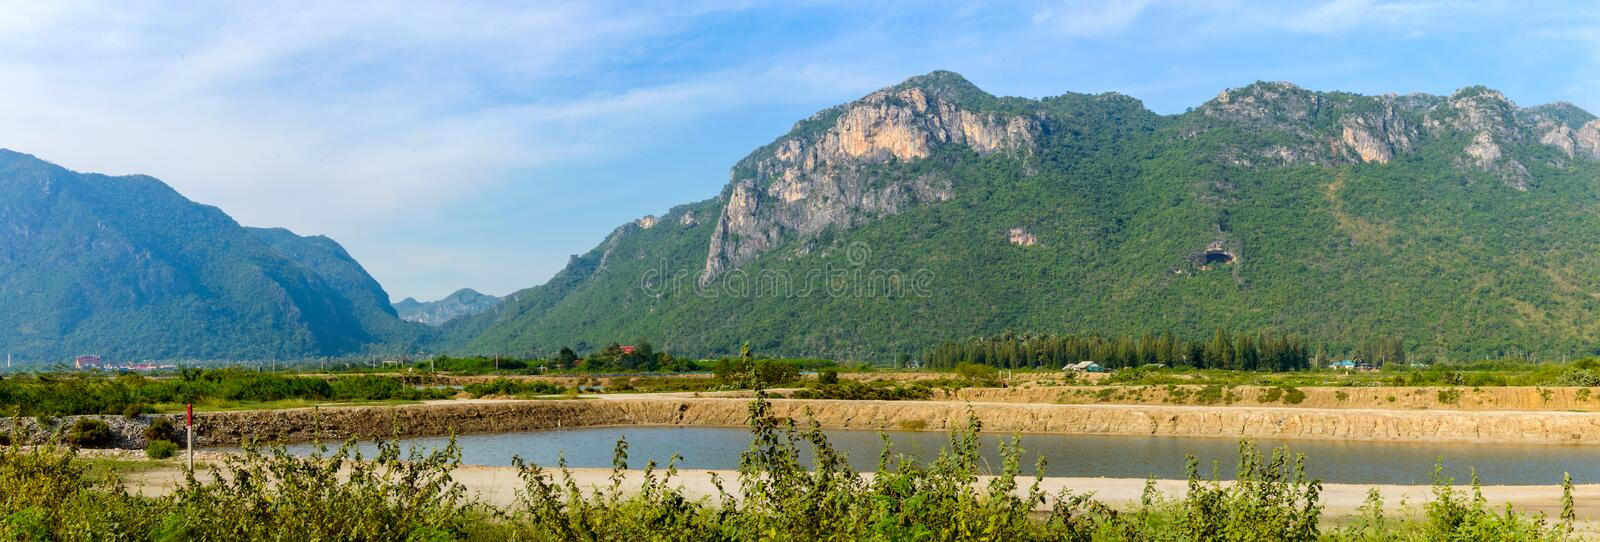 Landscape with rivers and hills in the Khao Sam Roi Yot National park south of hua hin in thailand stock photography